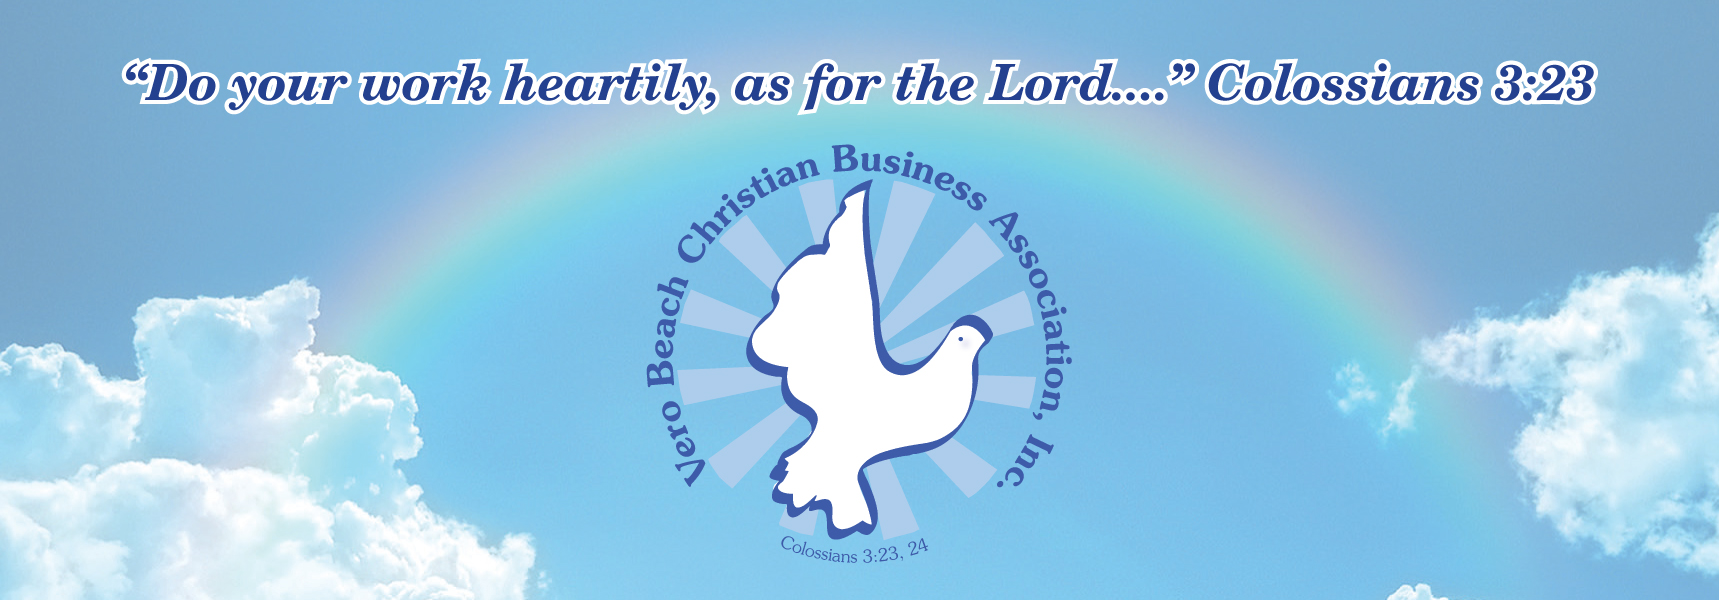 Vero Beach Christian Business Association